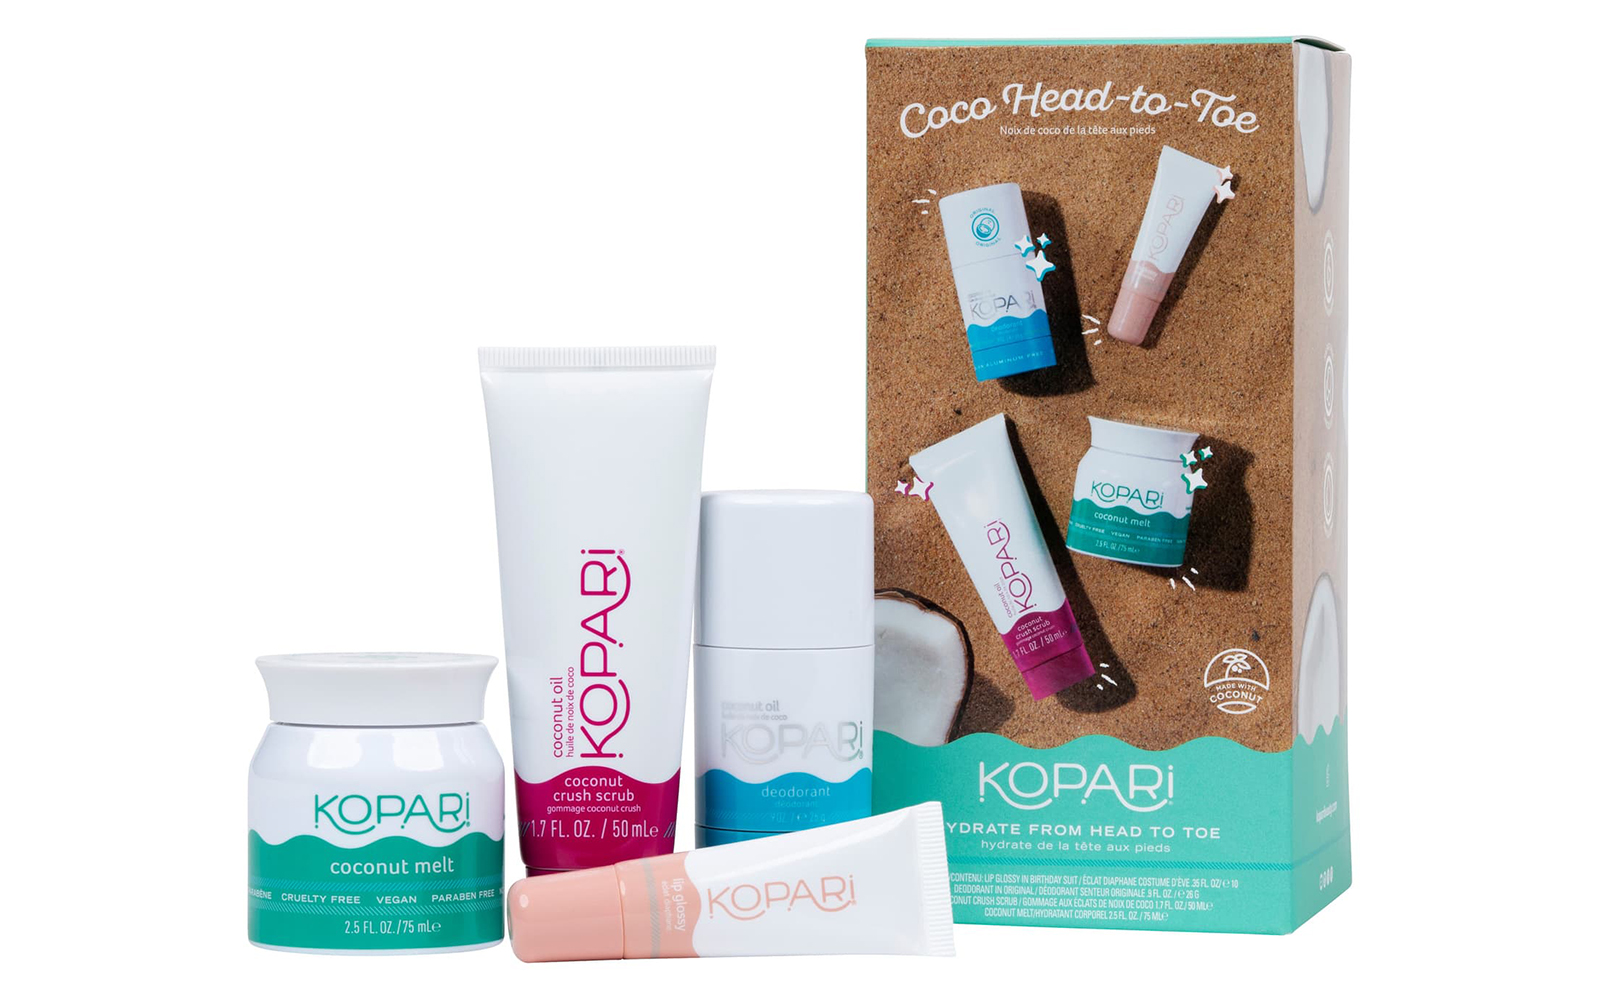 Kopari Coco Head-to-Toe Travel Size Kit